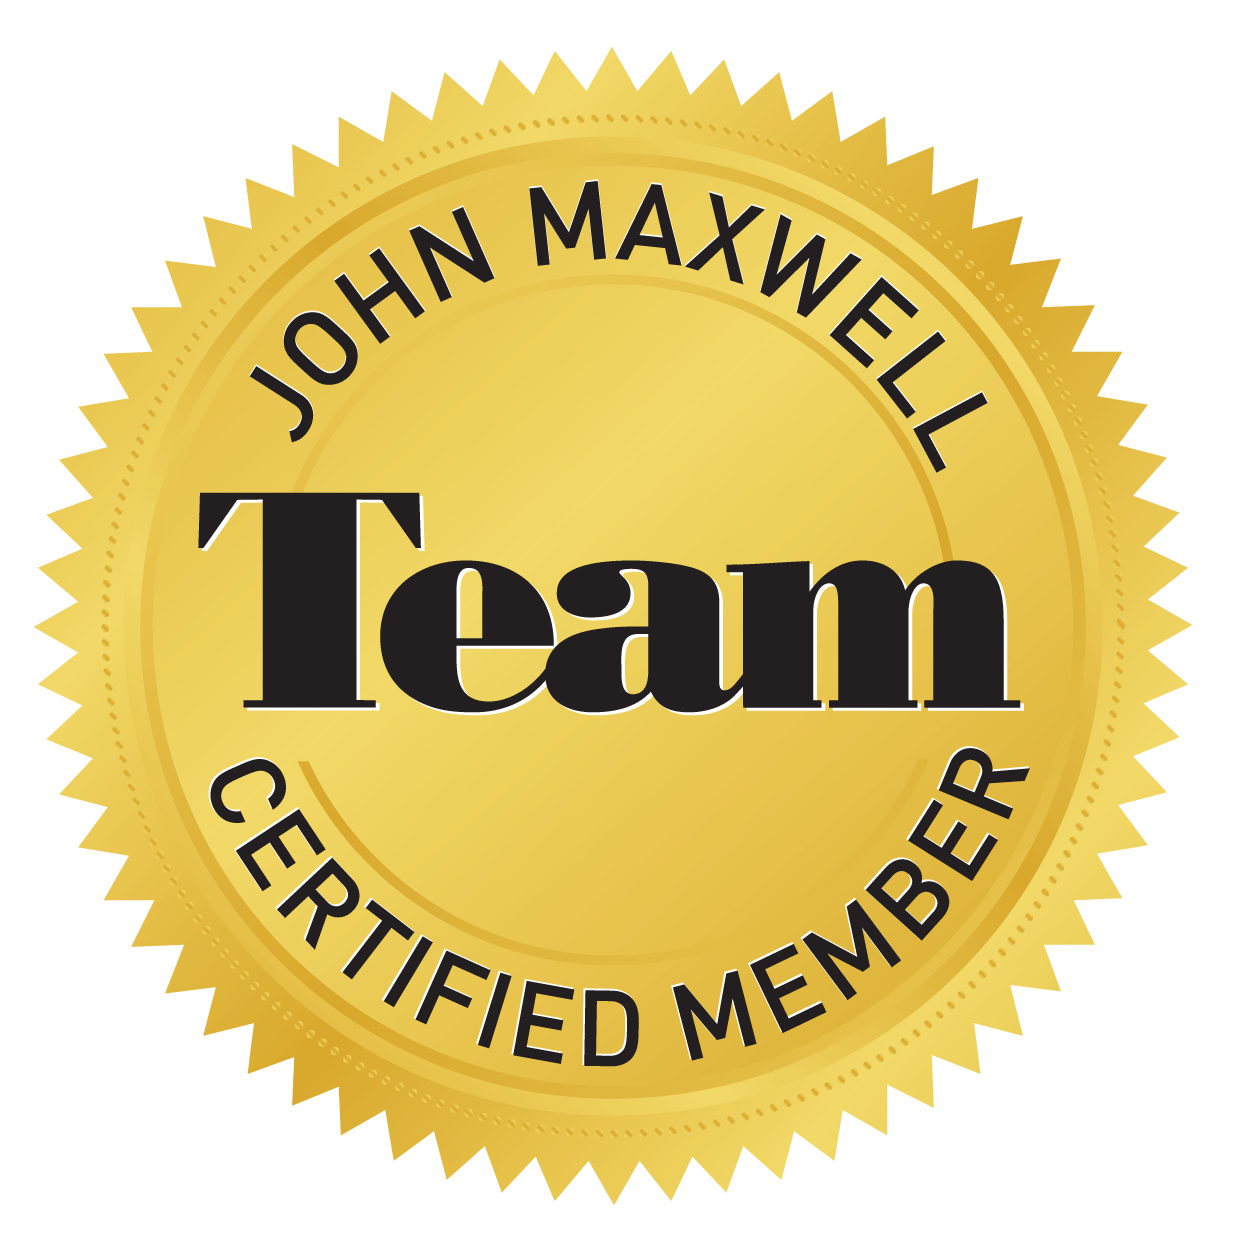 Dr. Carolyn G. Anderson is a John Maxwell Team Certified Speaker